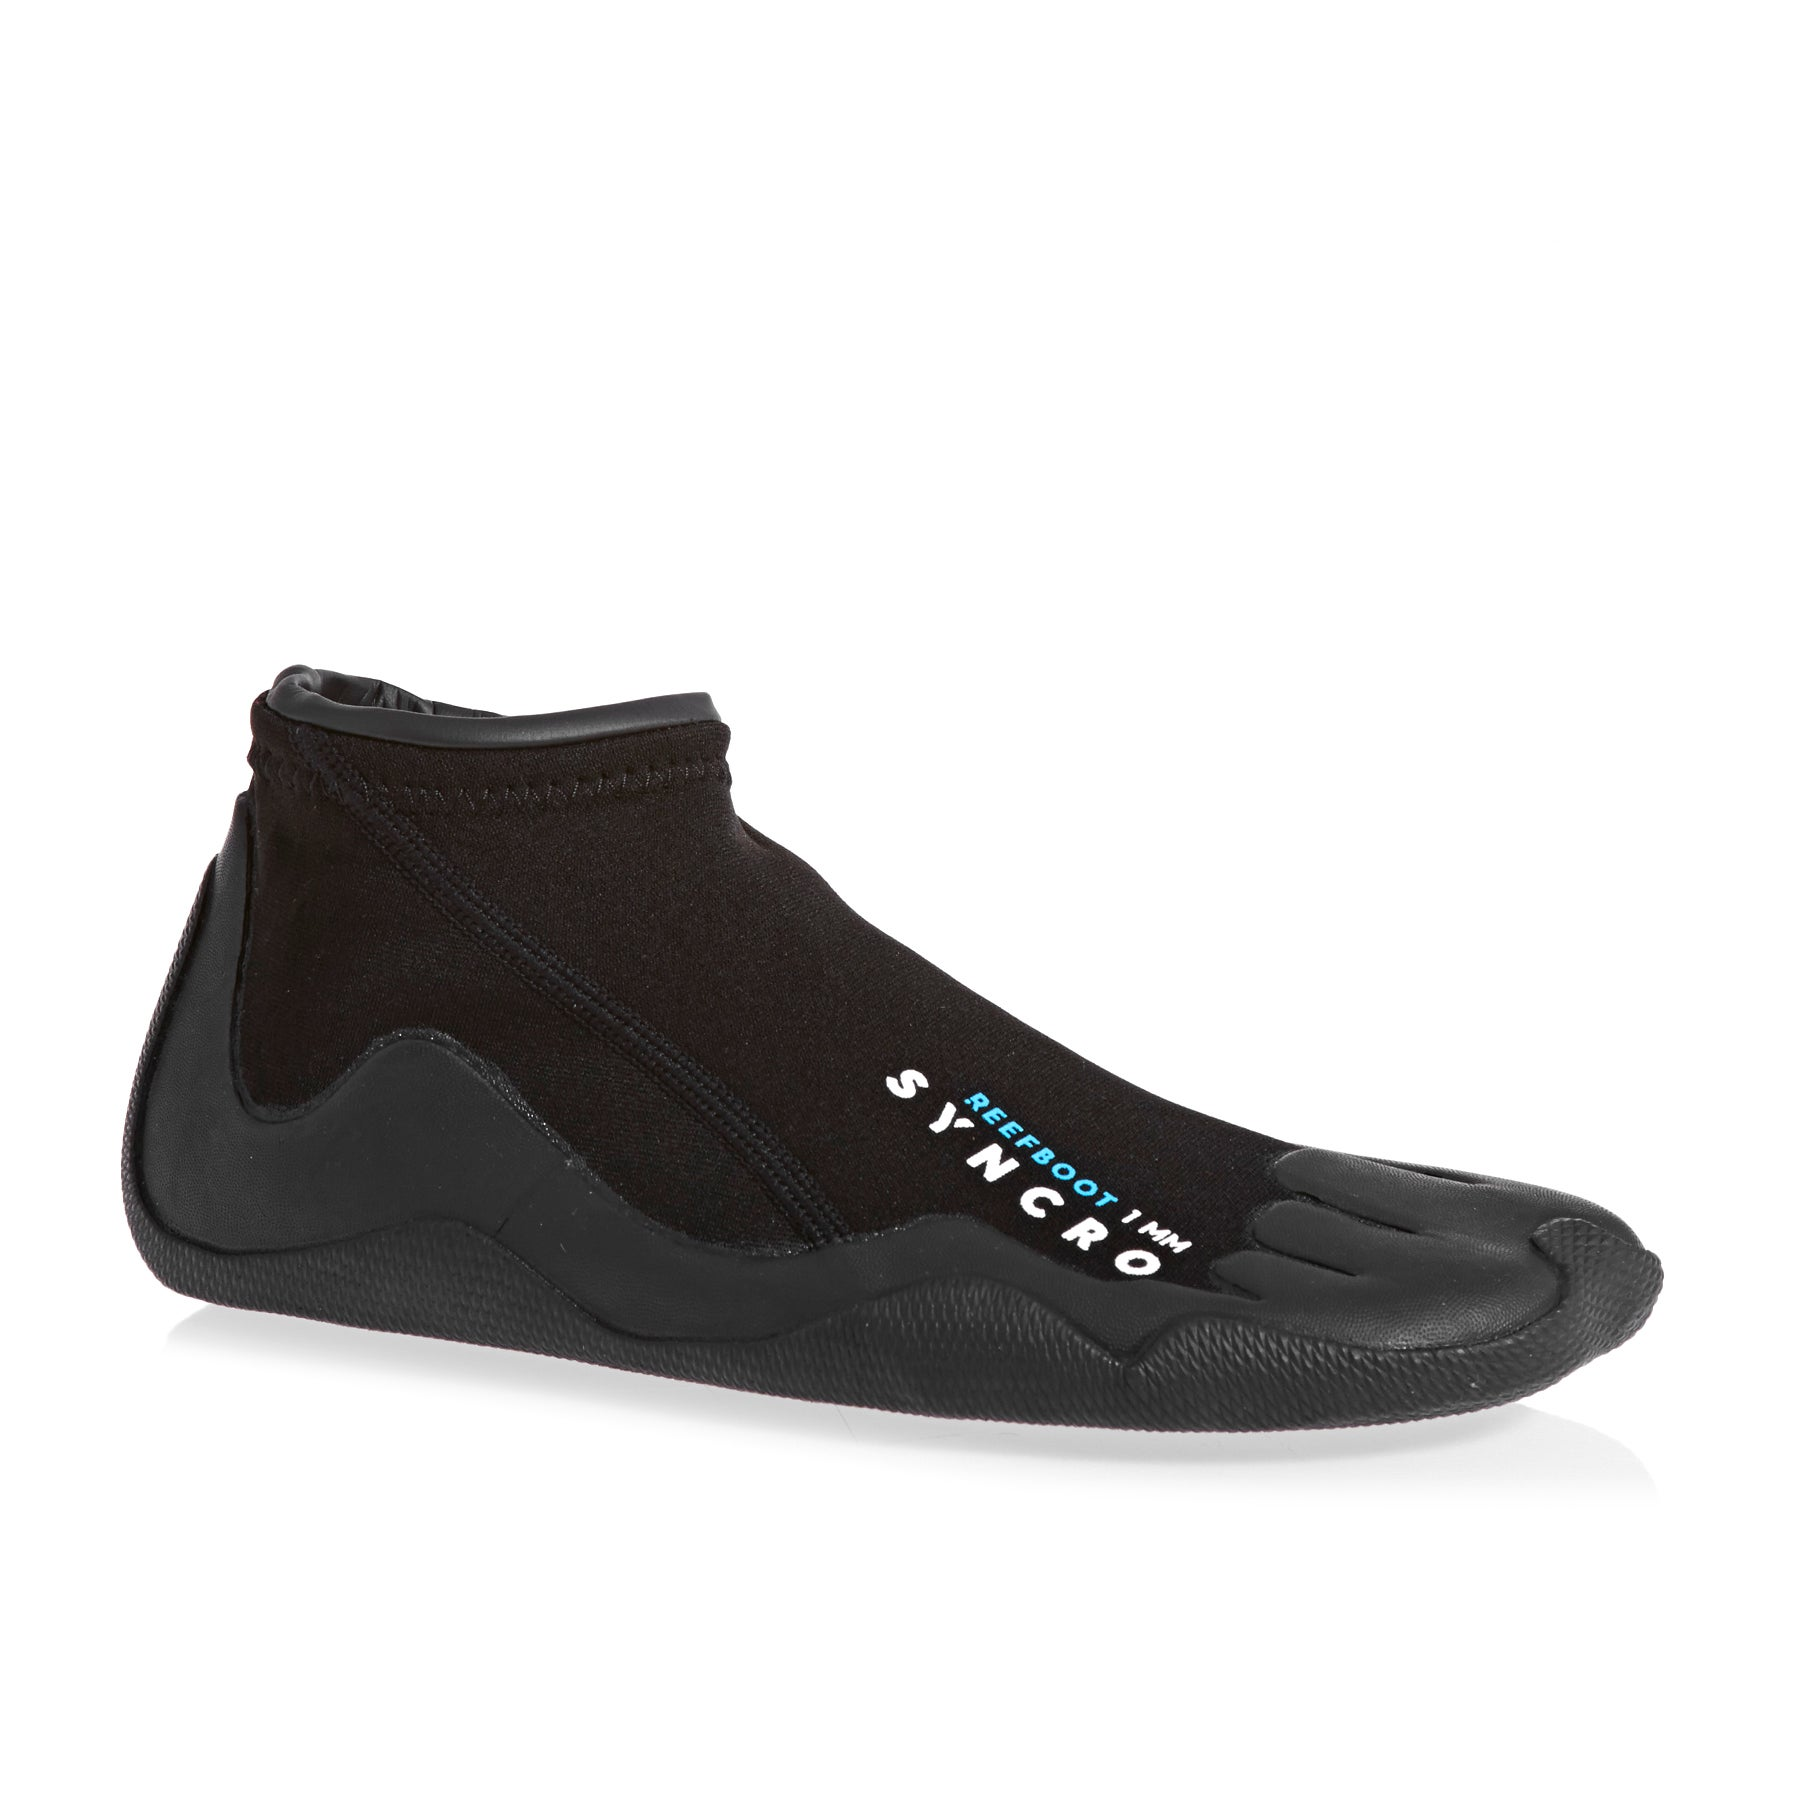 Quiksilver Syncro 1mm 2018 Reef Wetsuit Boots - Black